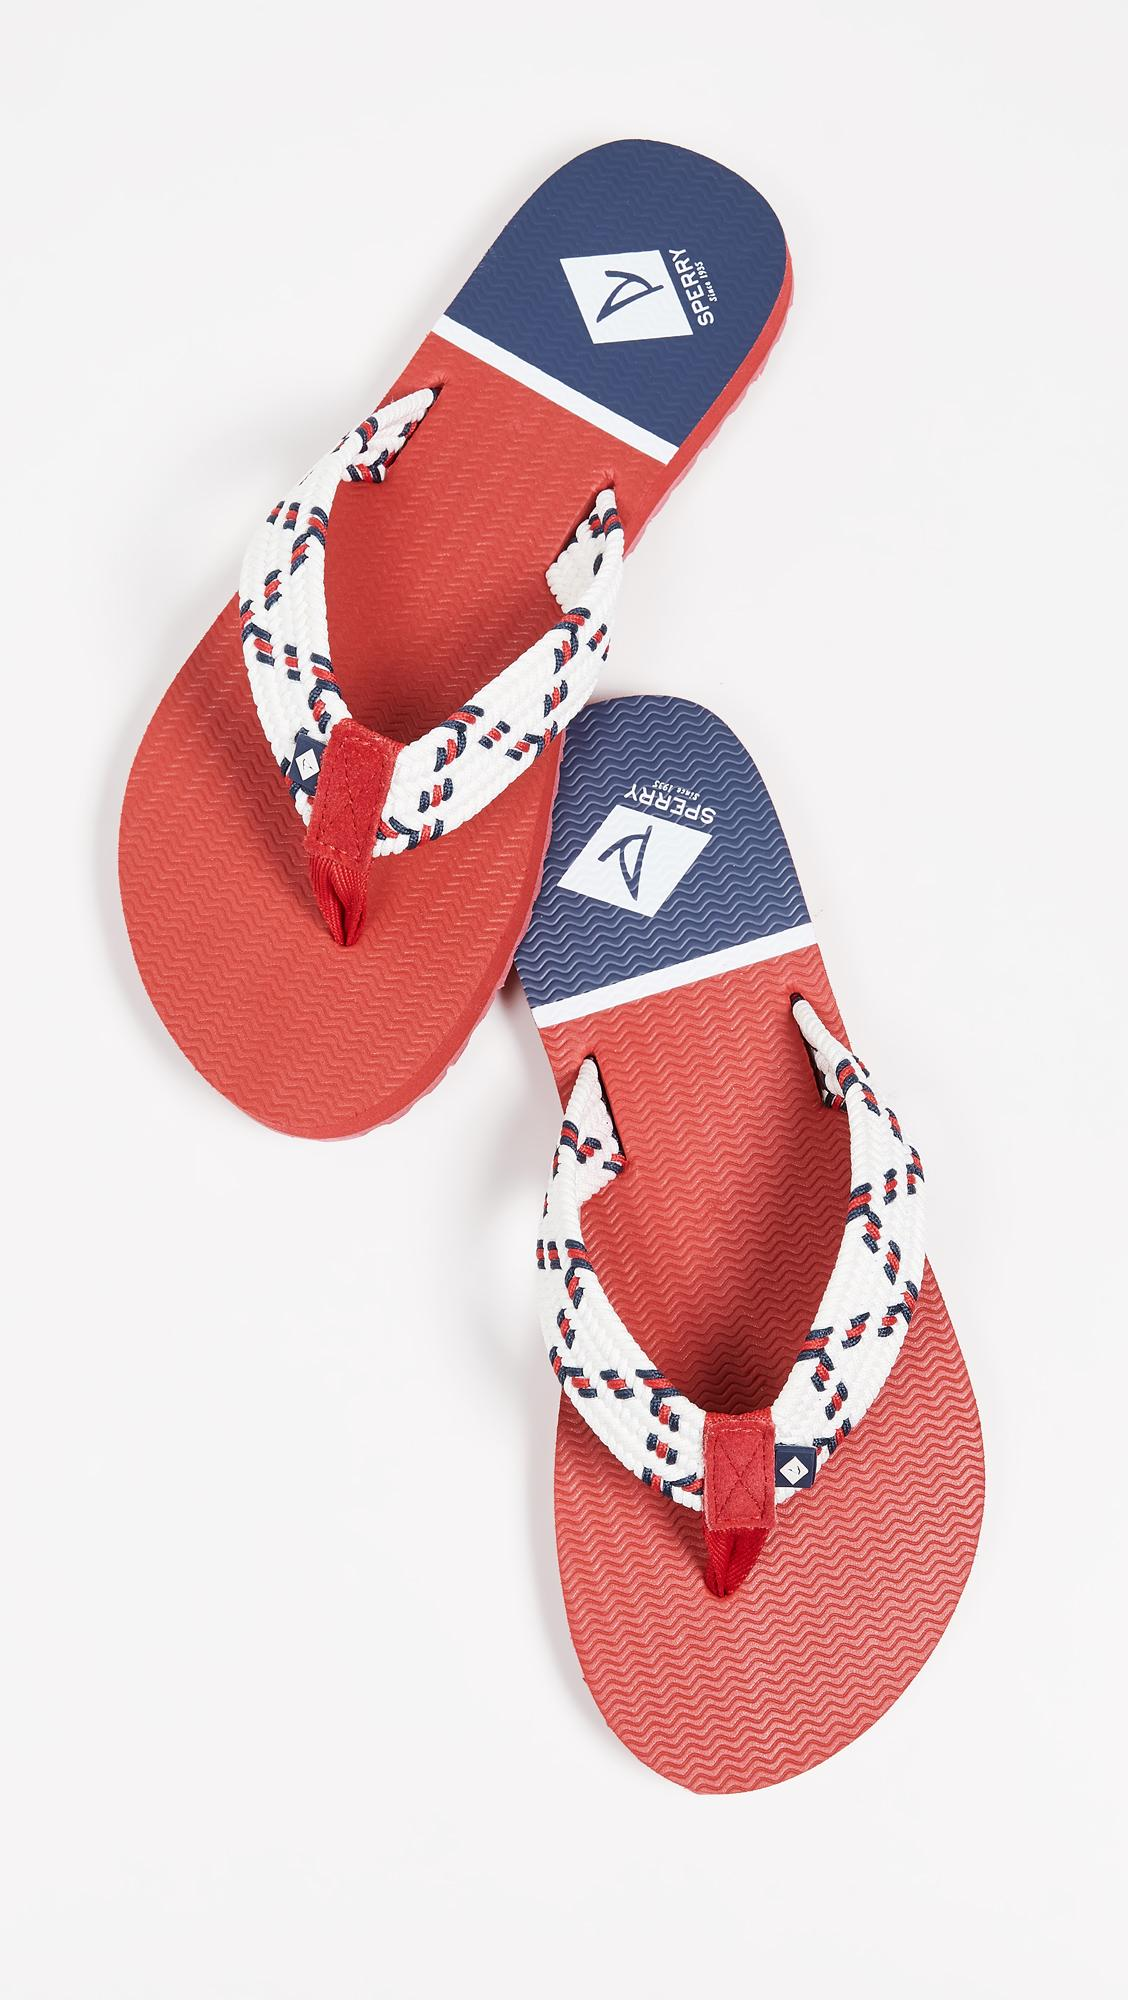 7bb8c7f528d Sperry Top-Sider Edgewater Woven Thong Sandals in Red - Lyst